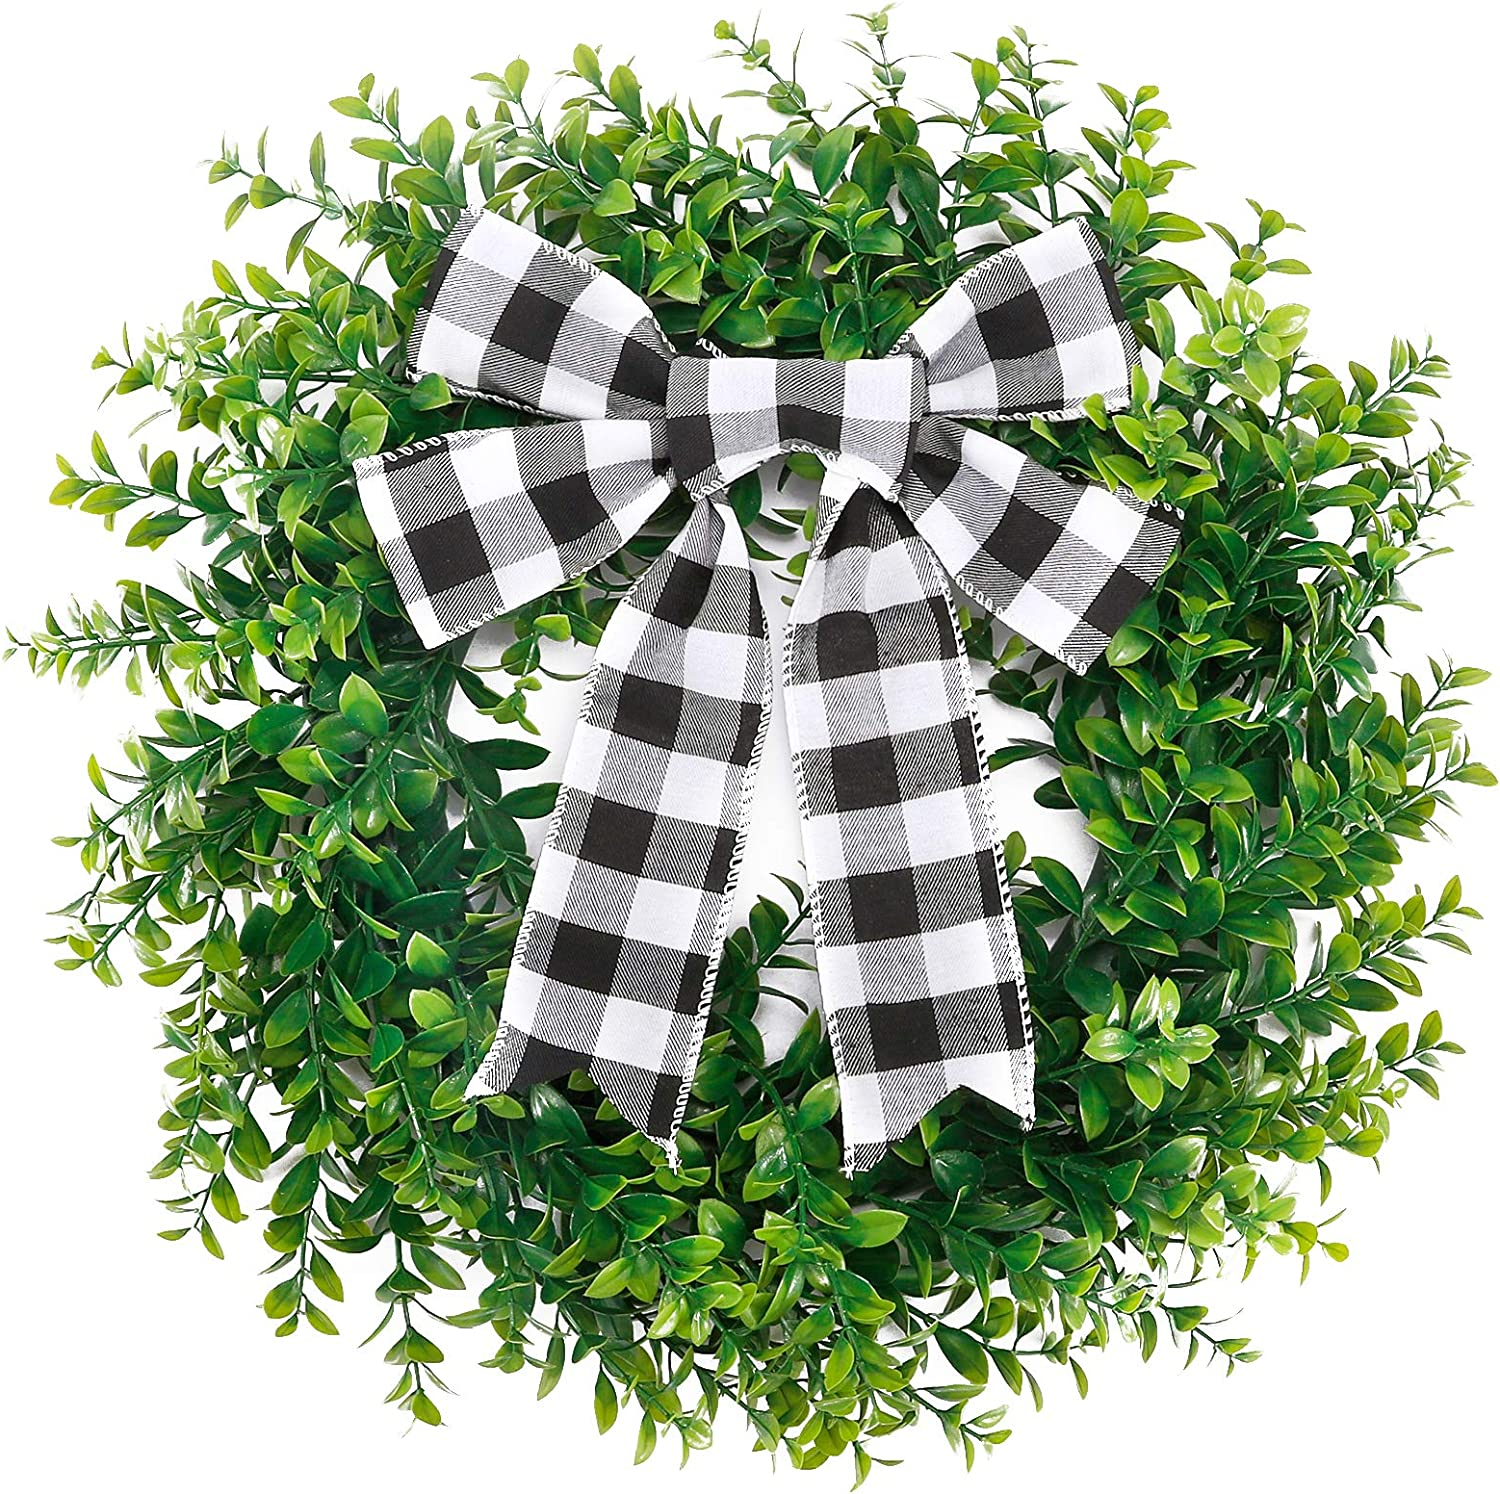 CEWOR 15 Inches Artificial Boxwood Wreath Spring Wreath Faux Green Leaves Greenery Wreath with A Plaid Bow for Front Door Wall Window Porch Farmhouse Patio Garden Decor